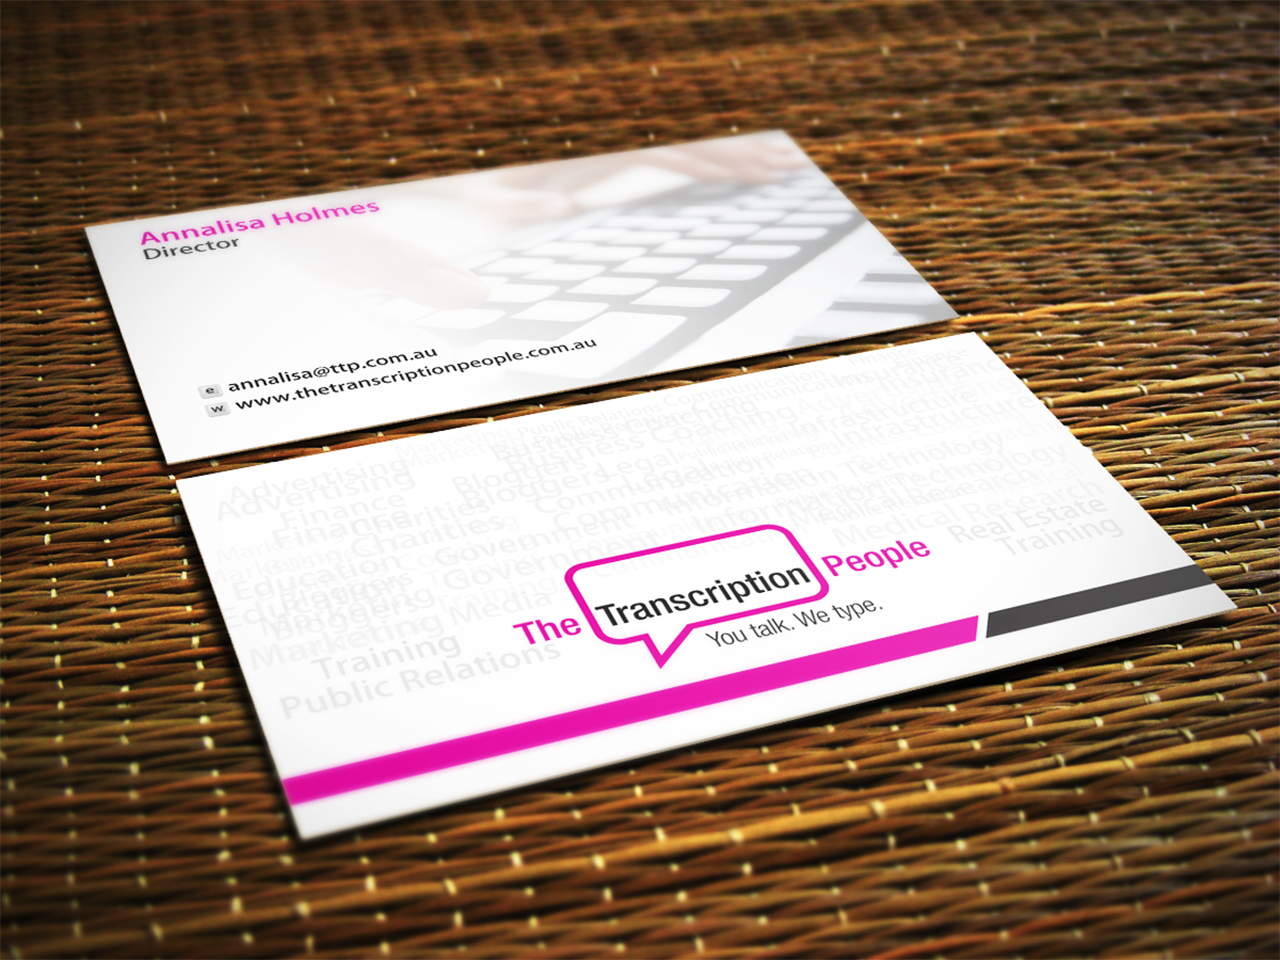 Business card design for the transcription people pty ltd by jagdish business card design by jagdish boga for typing service business card design design 9780747 colourmoves